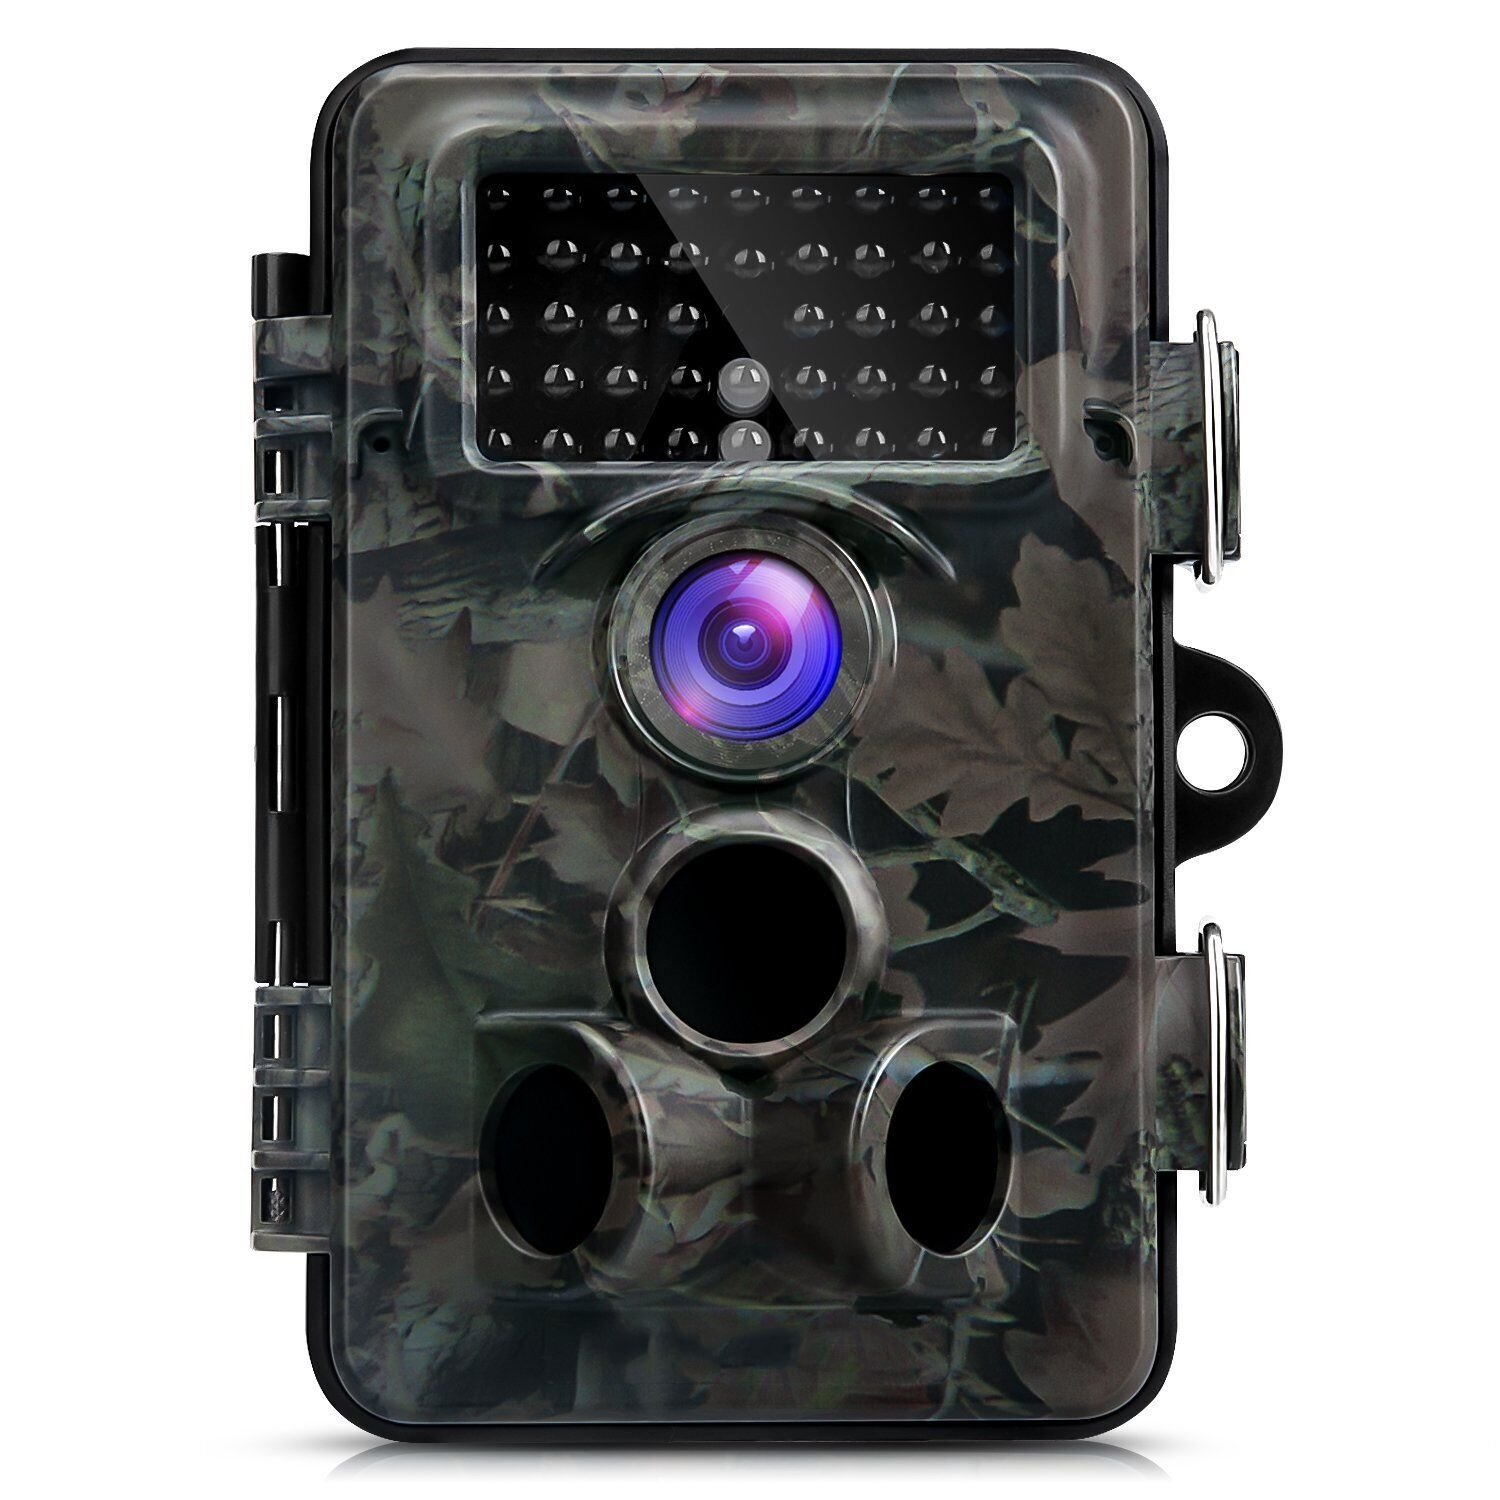 Trail Camera,with Day&Night Vision 12MP 1080P Game& Hunting Camera Waterproof Wildlife Camera with IP66 Water Resistant 2.4'' LCD Screen, 0.4s Trigger Time